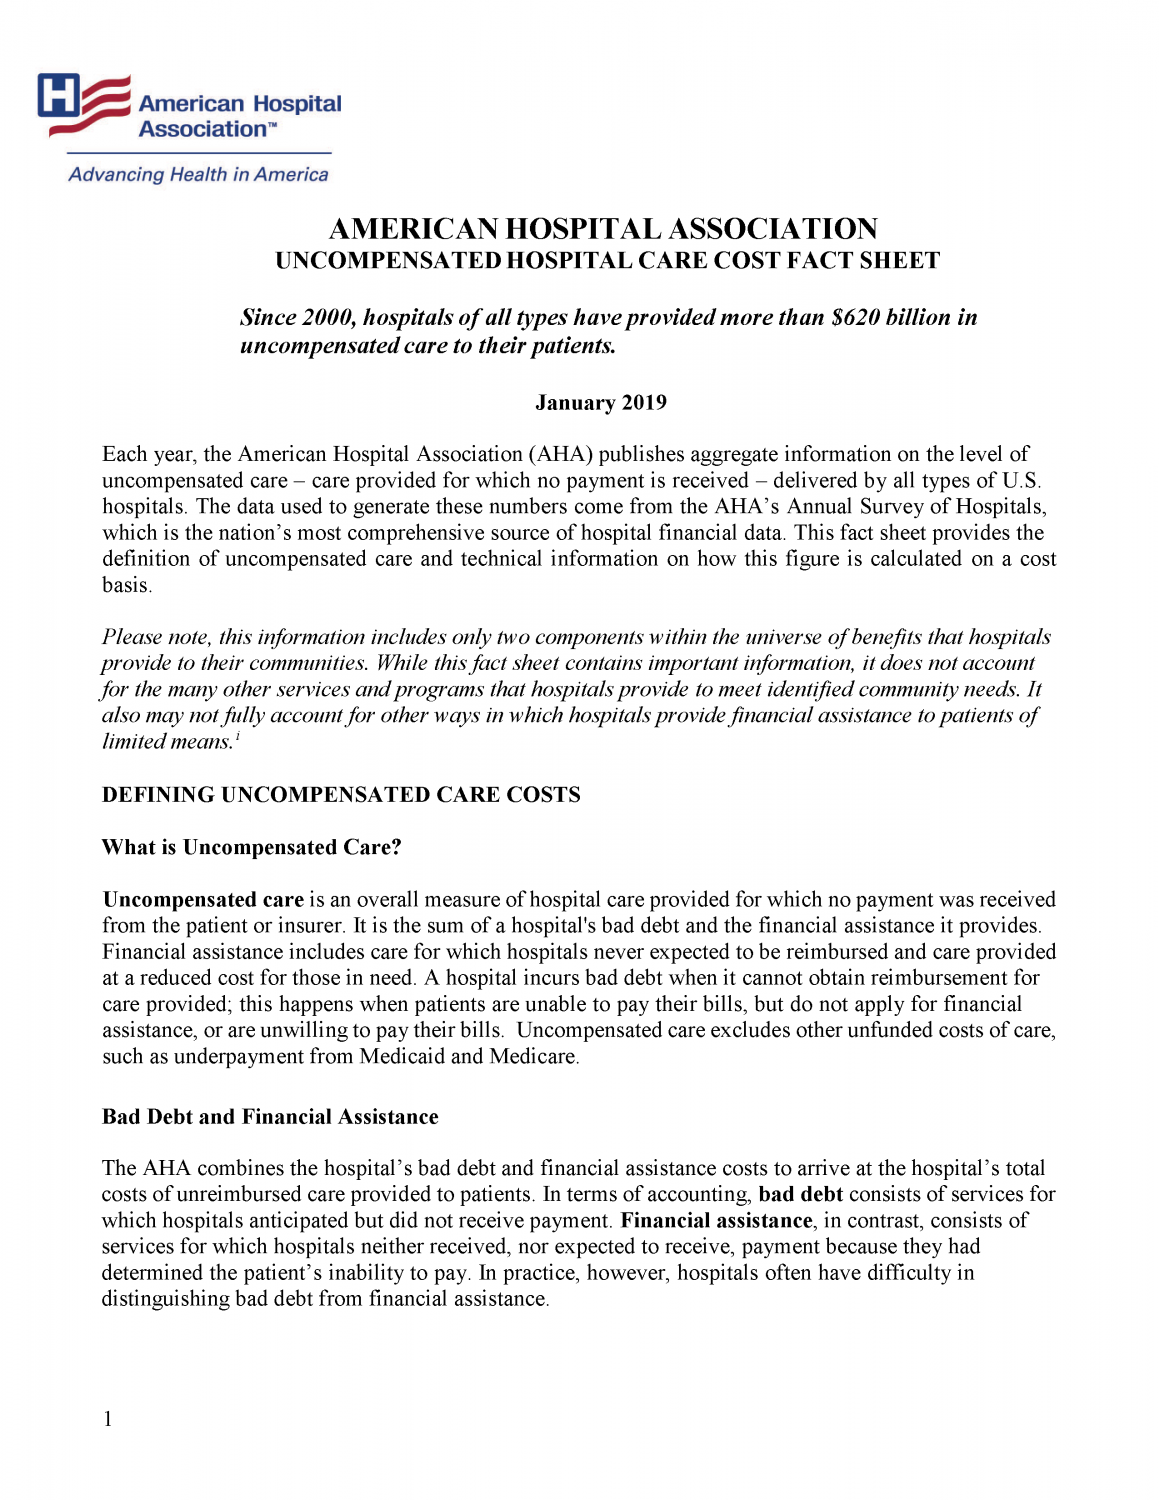 Page 1 of Uncompensated Hospital Care Cost Fact Sheet